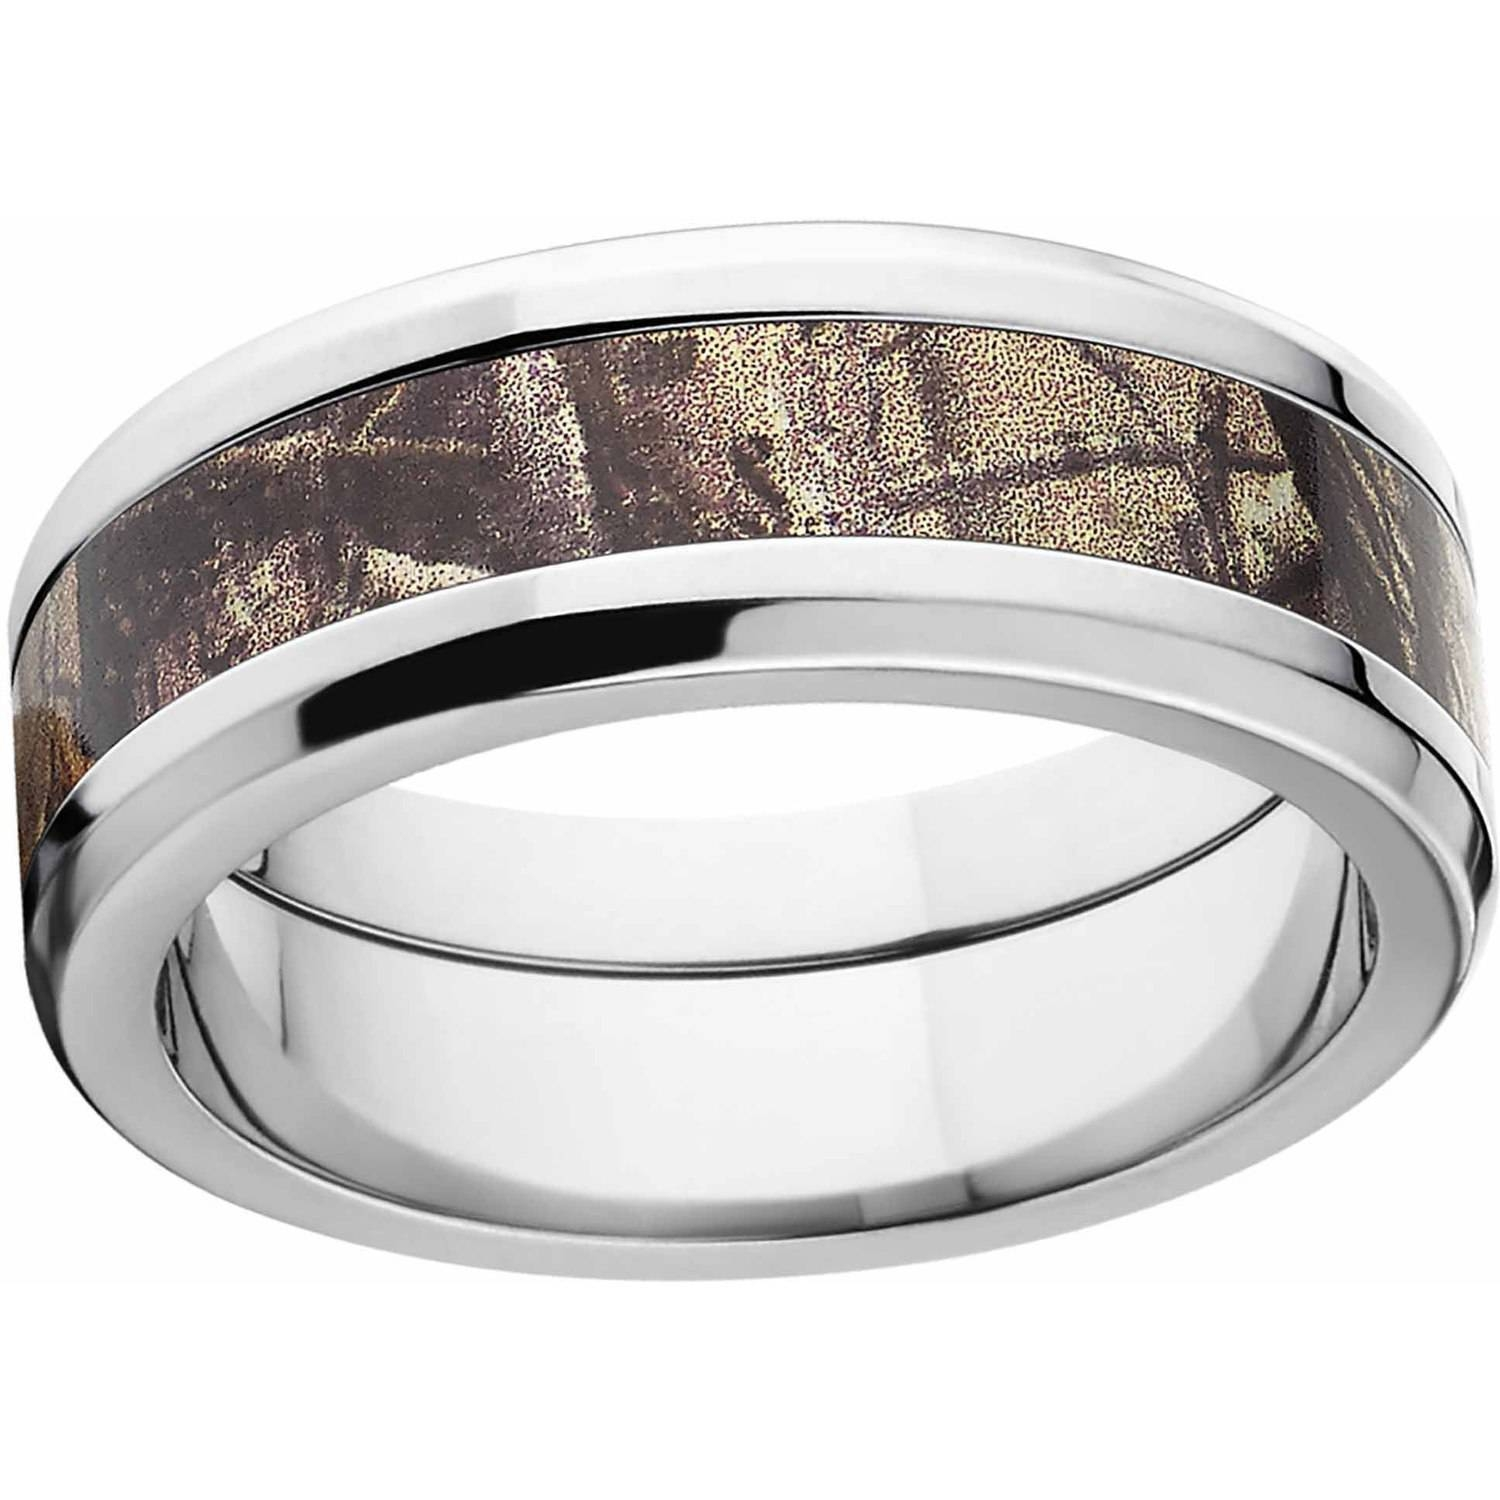 Sterling Silver High Polish 6mm Unique Textured Men's Wedding Band With Regard To Walmart Jewelry Men's Wedding Bands (View 9 of 15)